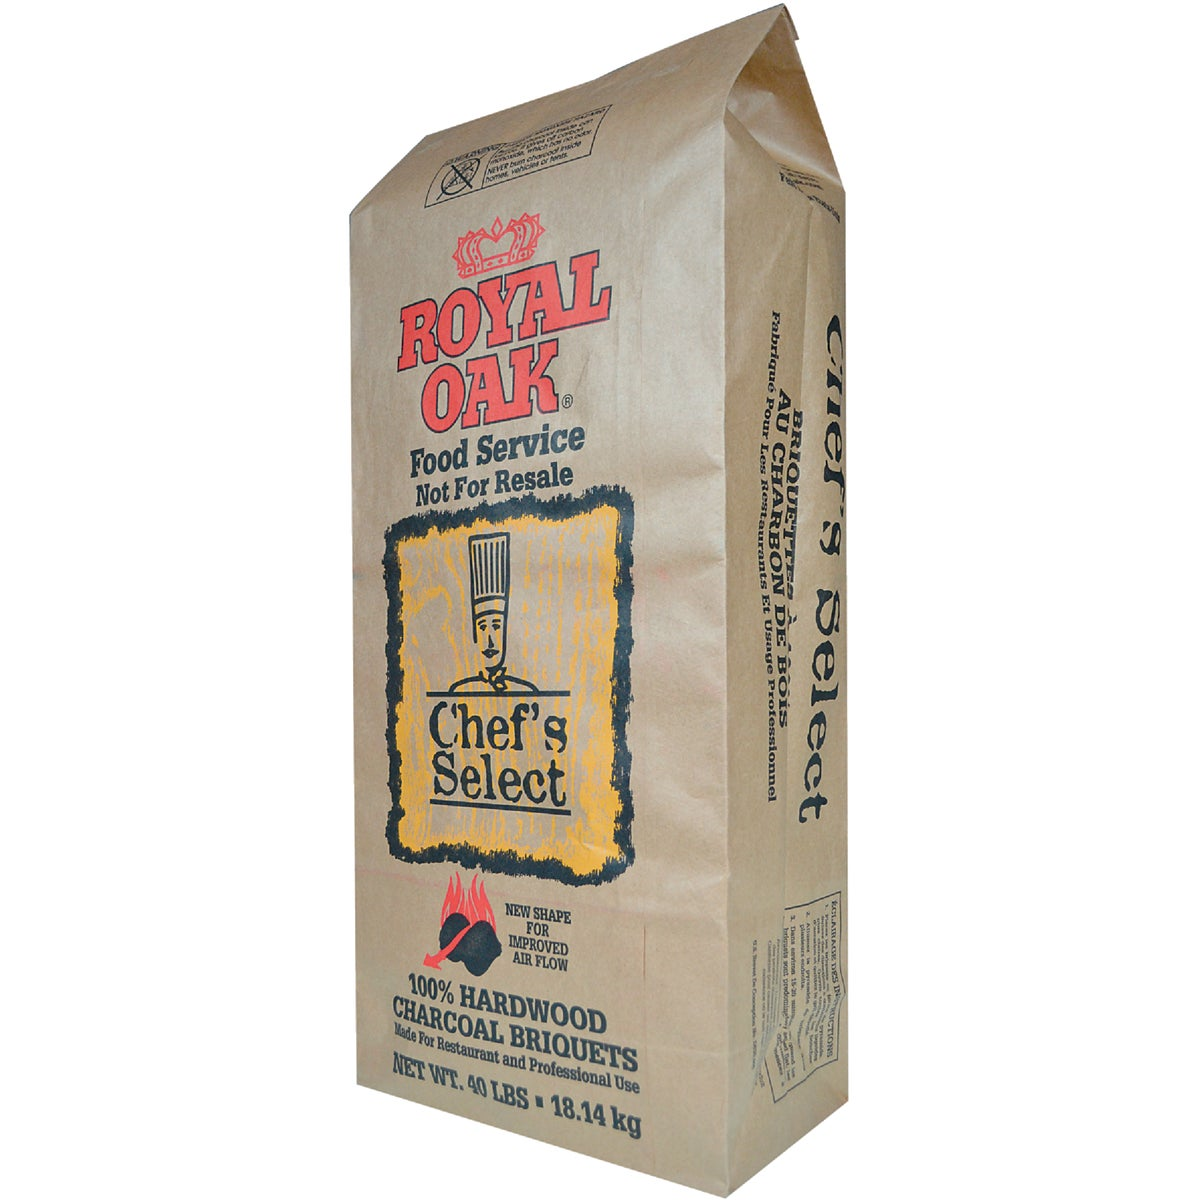 40LB BRIQUETTE CHARCOAL - 192-104-026 by Royal Oak